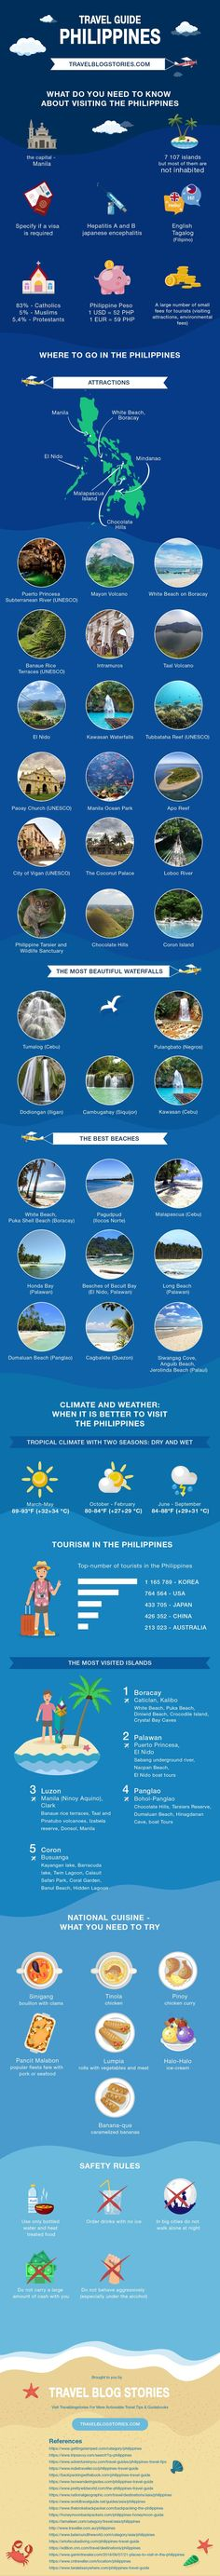 1027 Best Philippines Travel Inspiration & Tips images